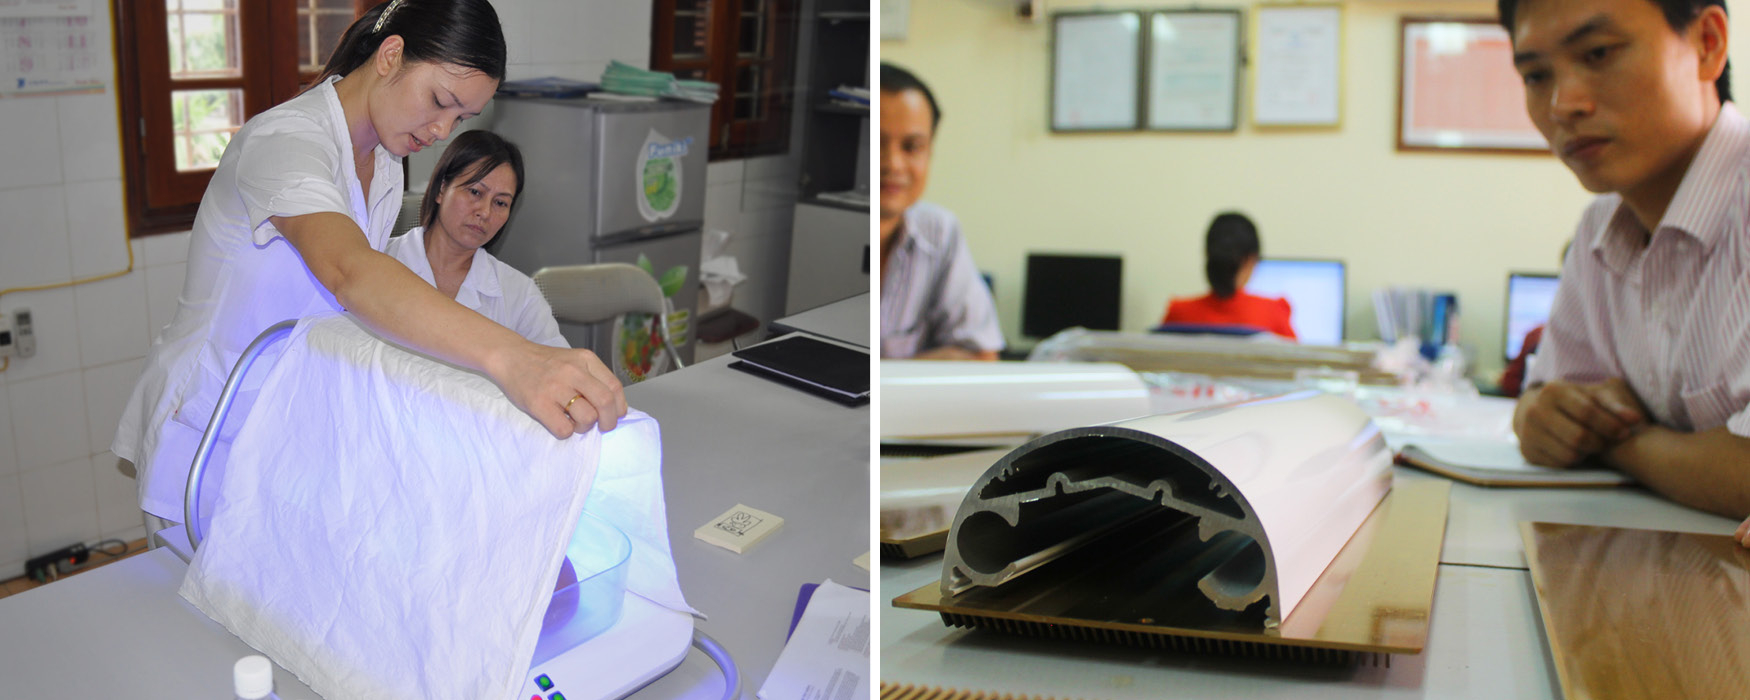 Left: A nurse uses our alpha prototype to show how she would drape Firefly to keep the light from bothering bystanders, and to keep the baby warmer. Right: The resulting top light is made of thick metal to ensure heat can escape even when draped.